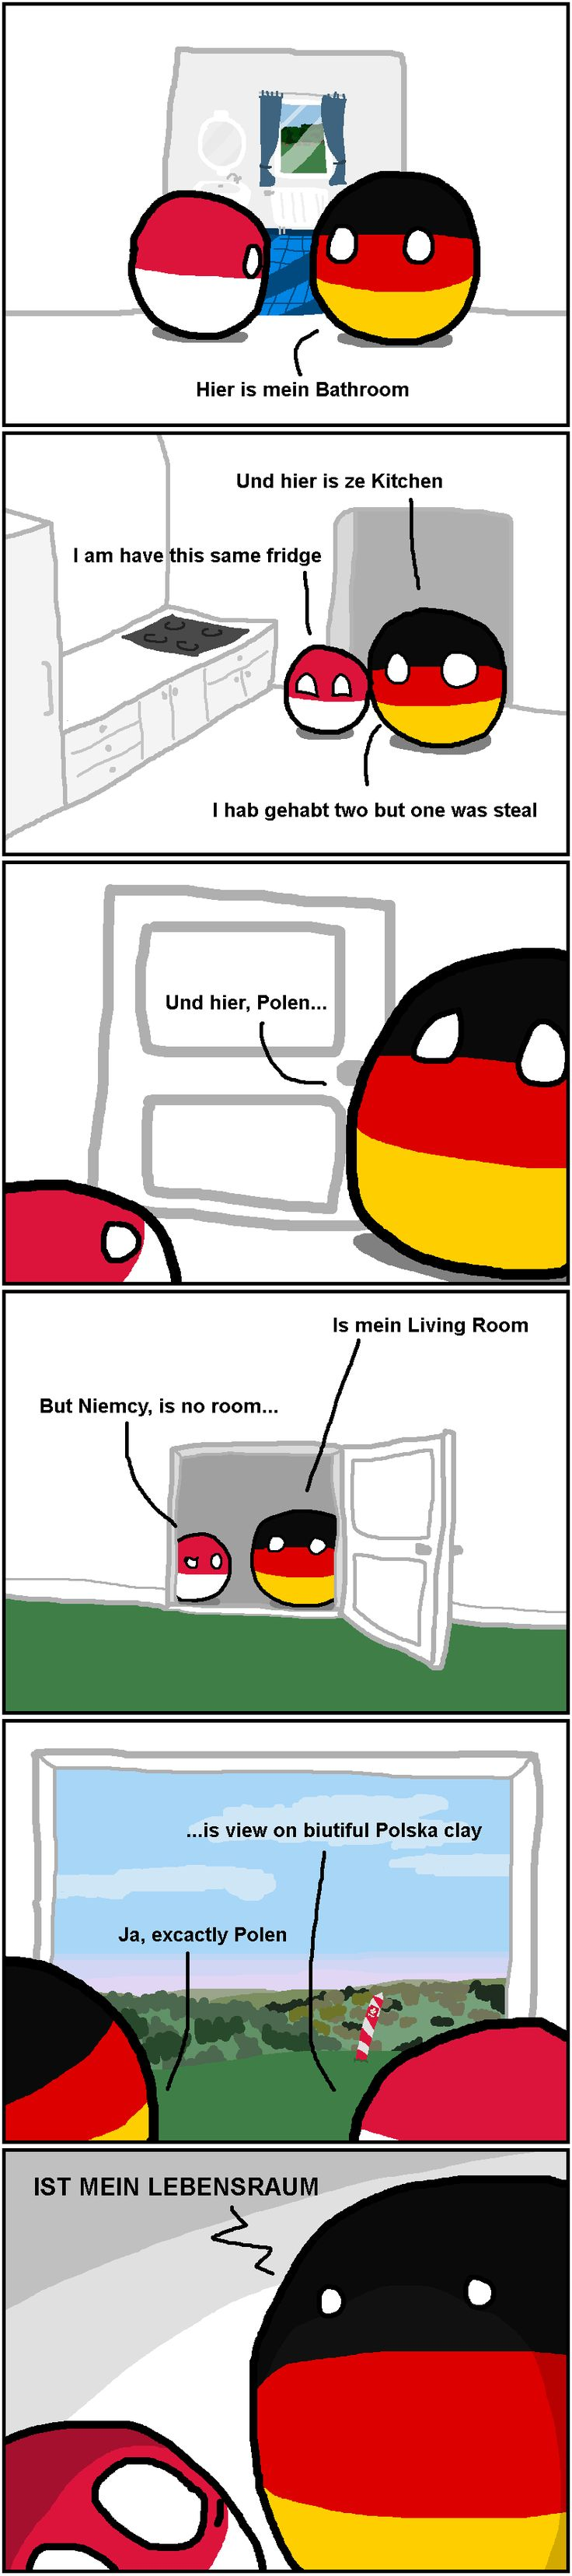 Germanys House